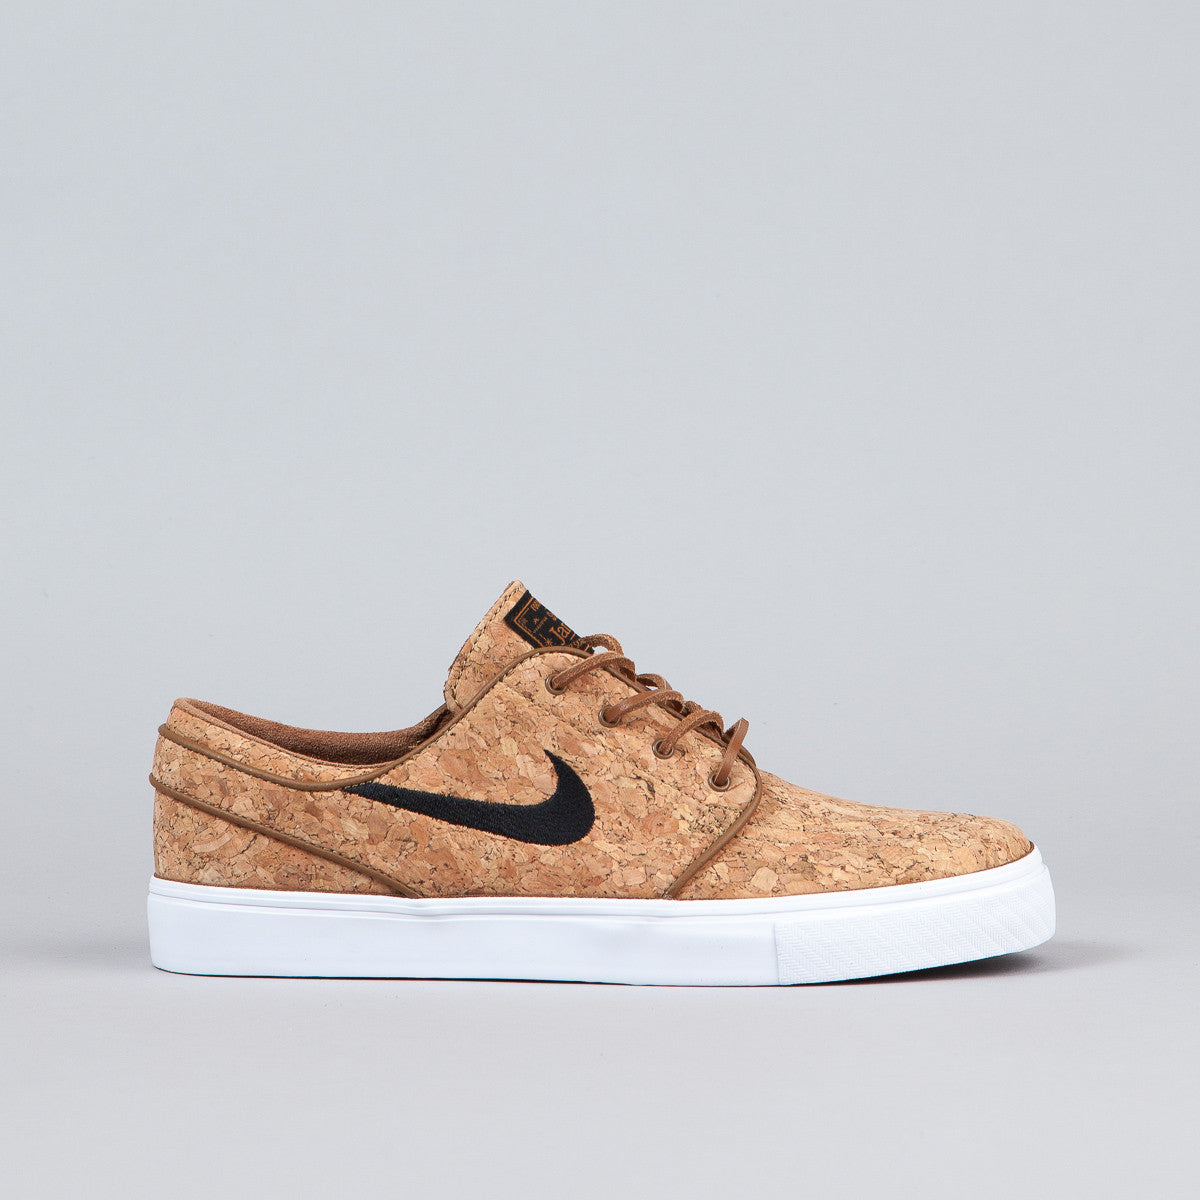 Nike SB Stefan Janoski Elite Shoes (Cork)